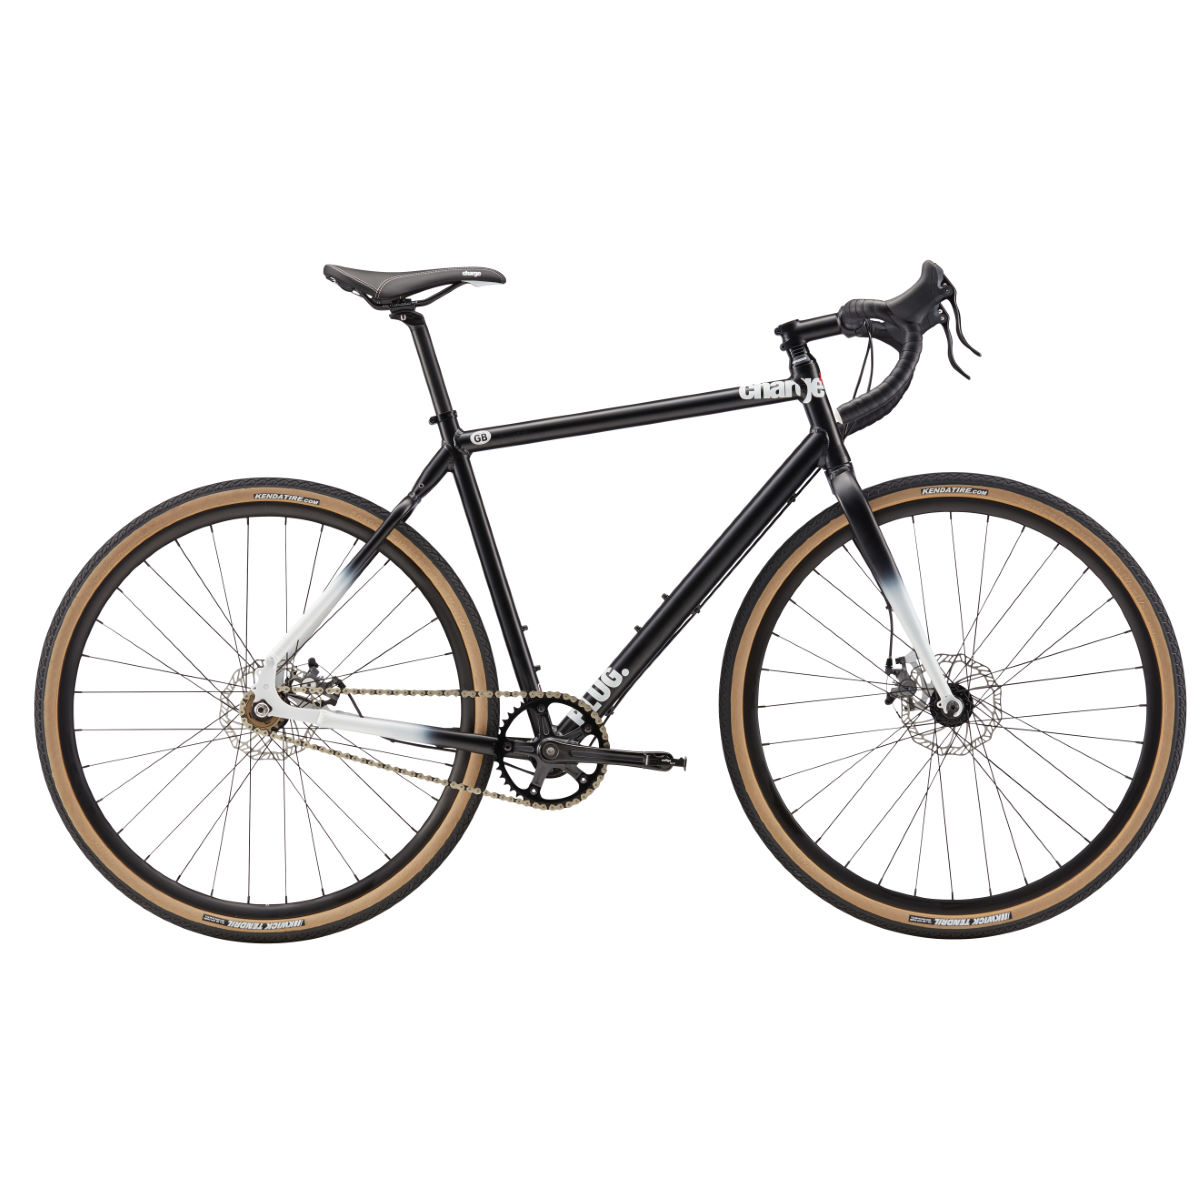 Vélo single speed Charge Plug 1 Disc (2017) - LG Stock Bike Noir Single speed